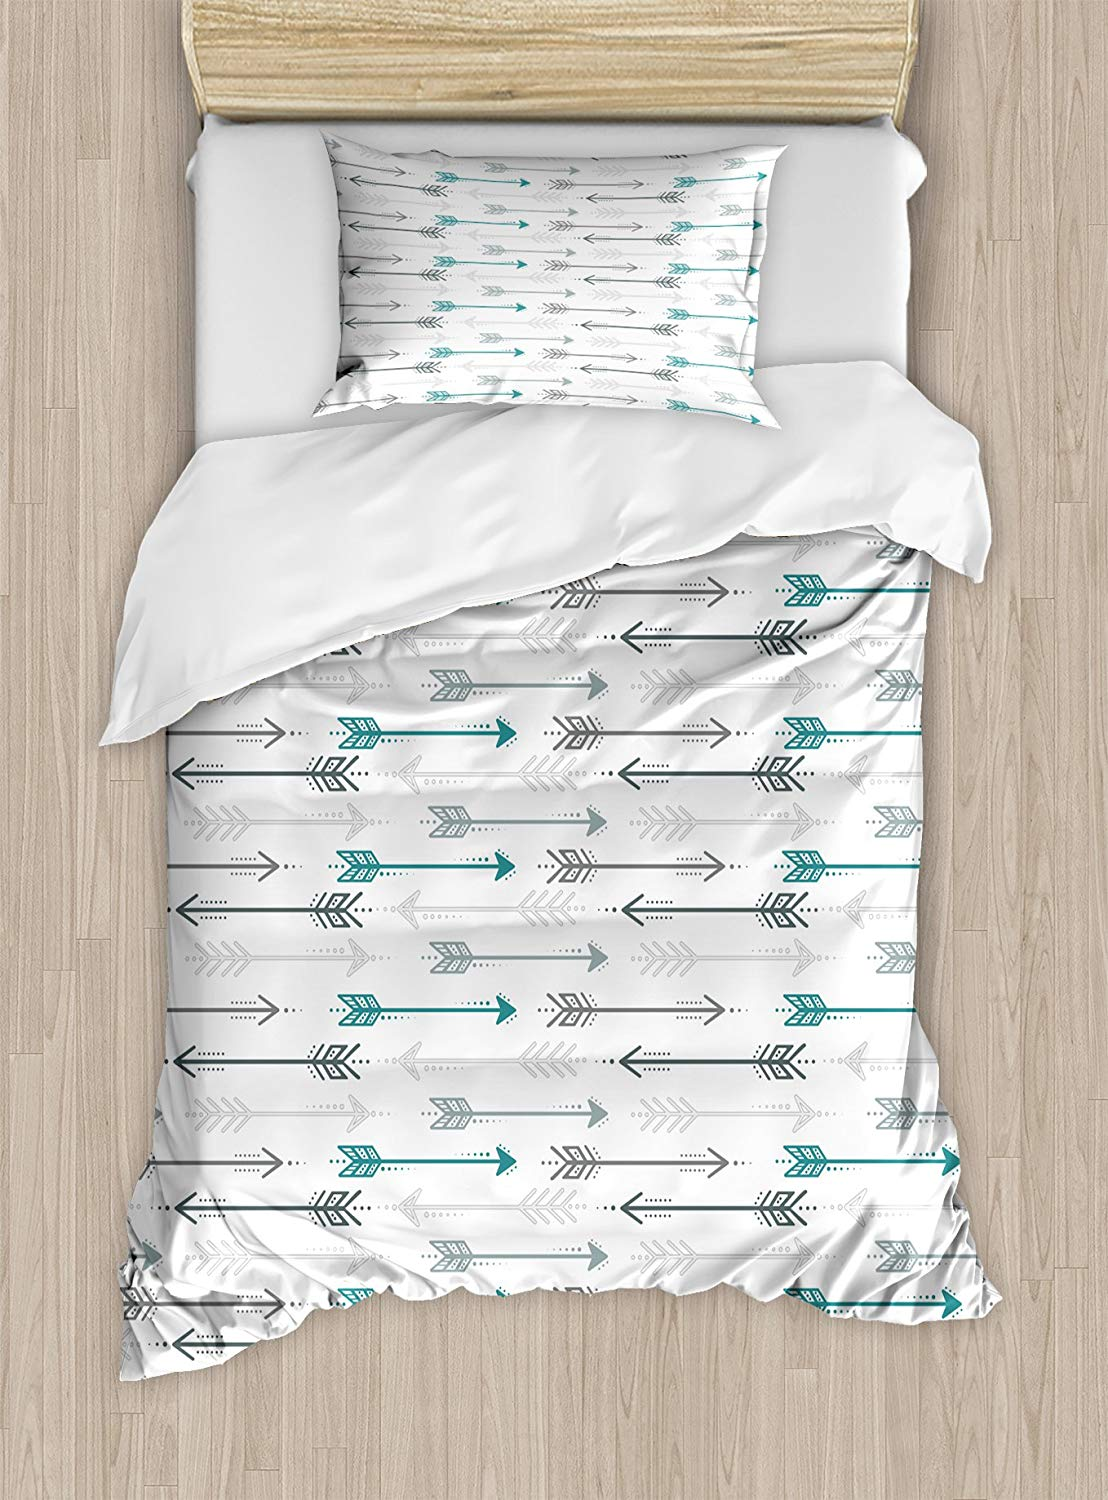 Ambesonne Teal Duvet Cover Set